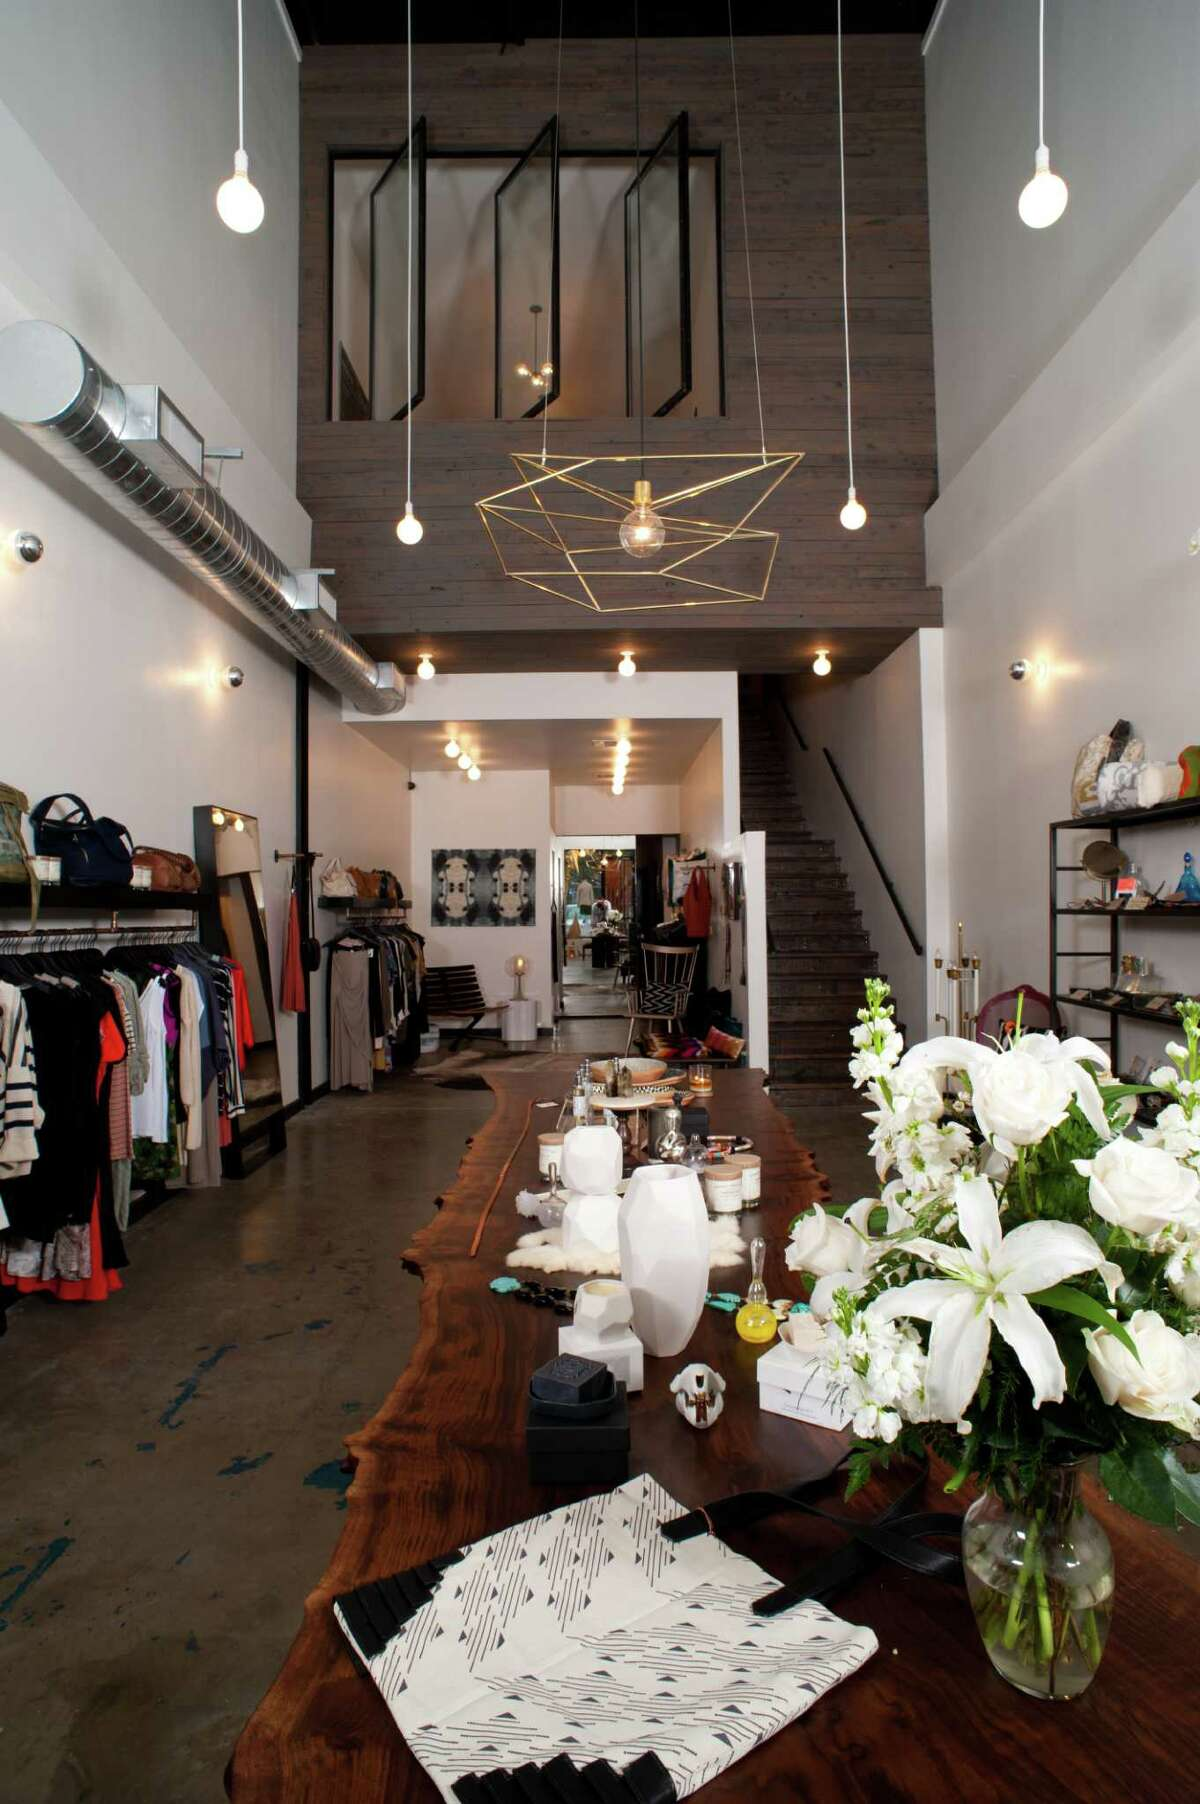 Settlement Goods & Design is located at 3939 Montrose, Suite M, and only sells products made in the USA.